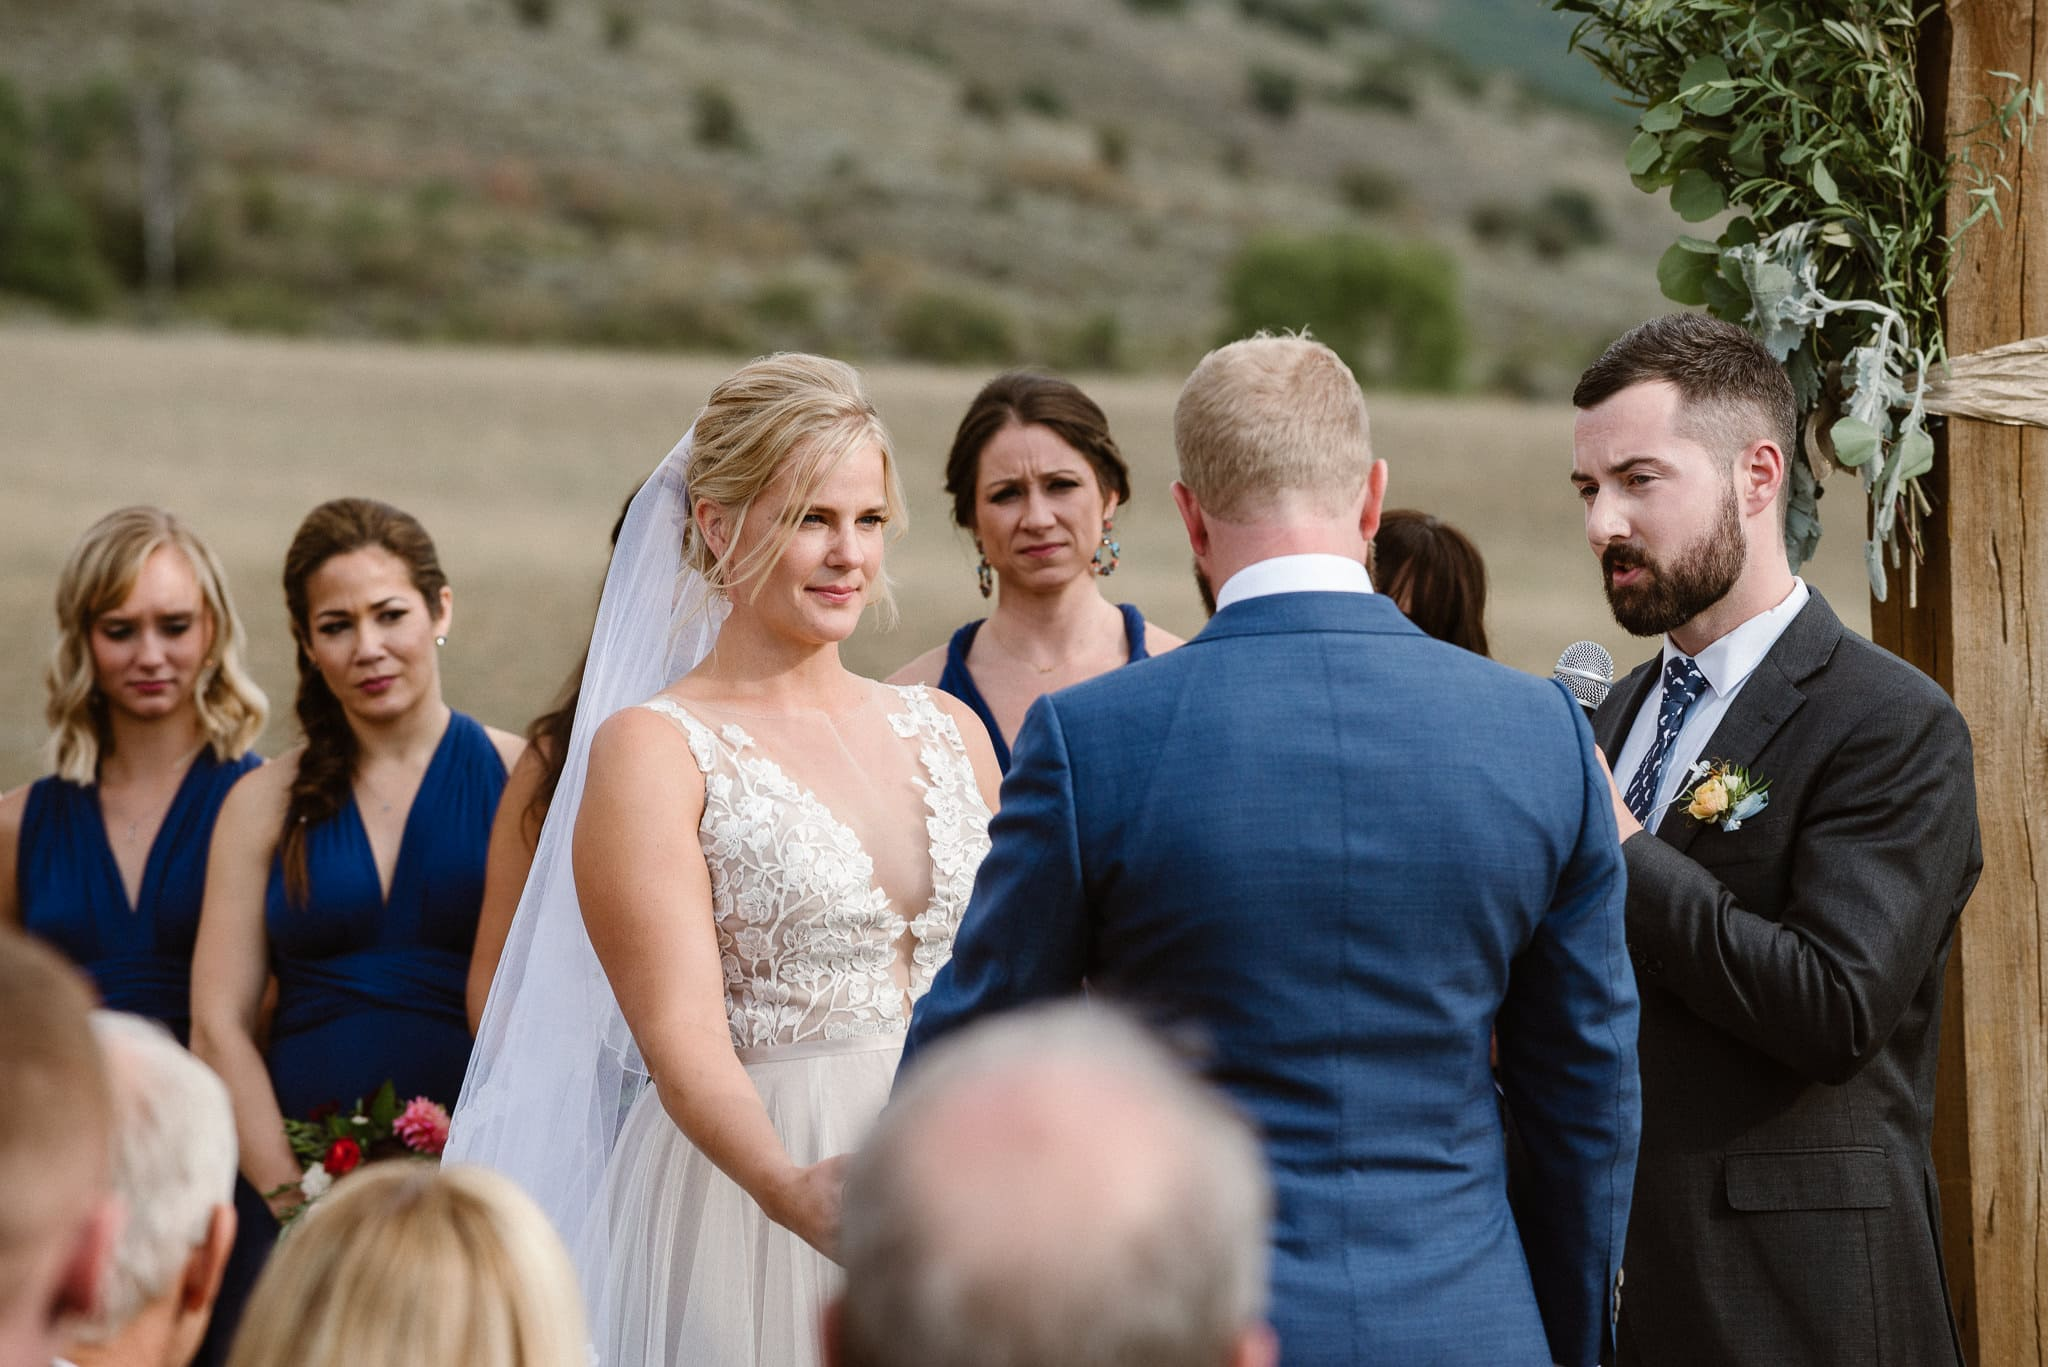 Steamboat Springs wedding photographer, La Joya Dulce wedding, Colorado ranch wedding venues, outdoor wedding ceremony, bridesmaids watching wedding ceremony, bride during ceremony